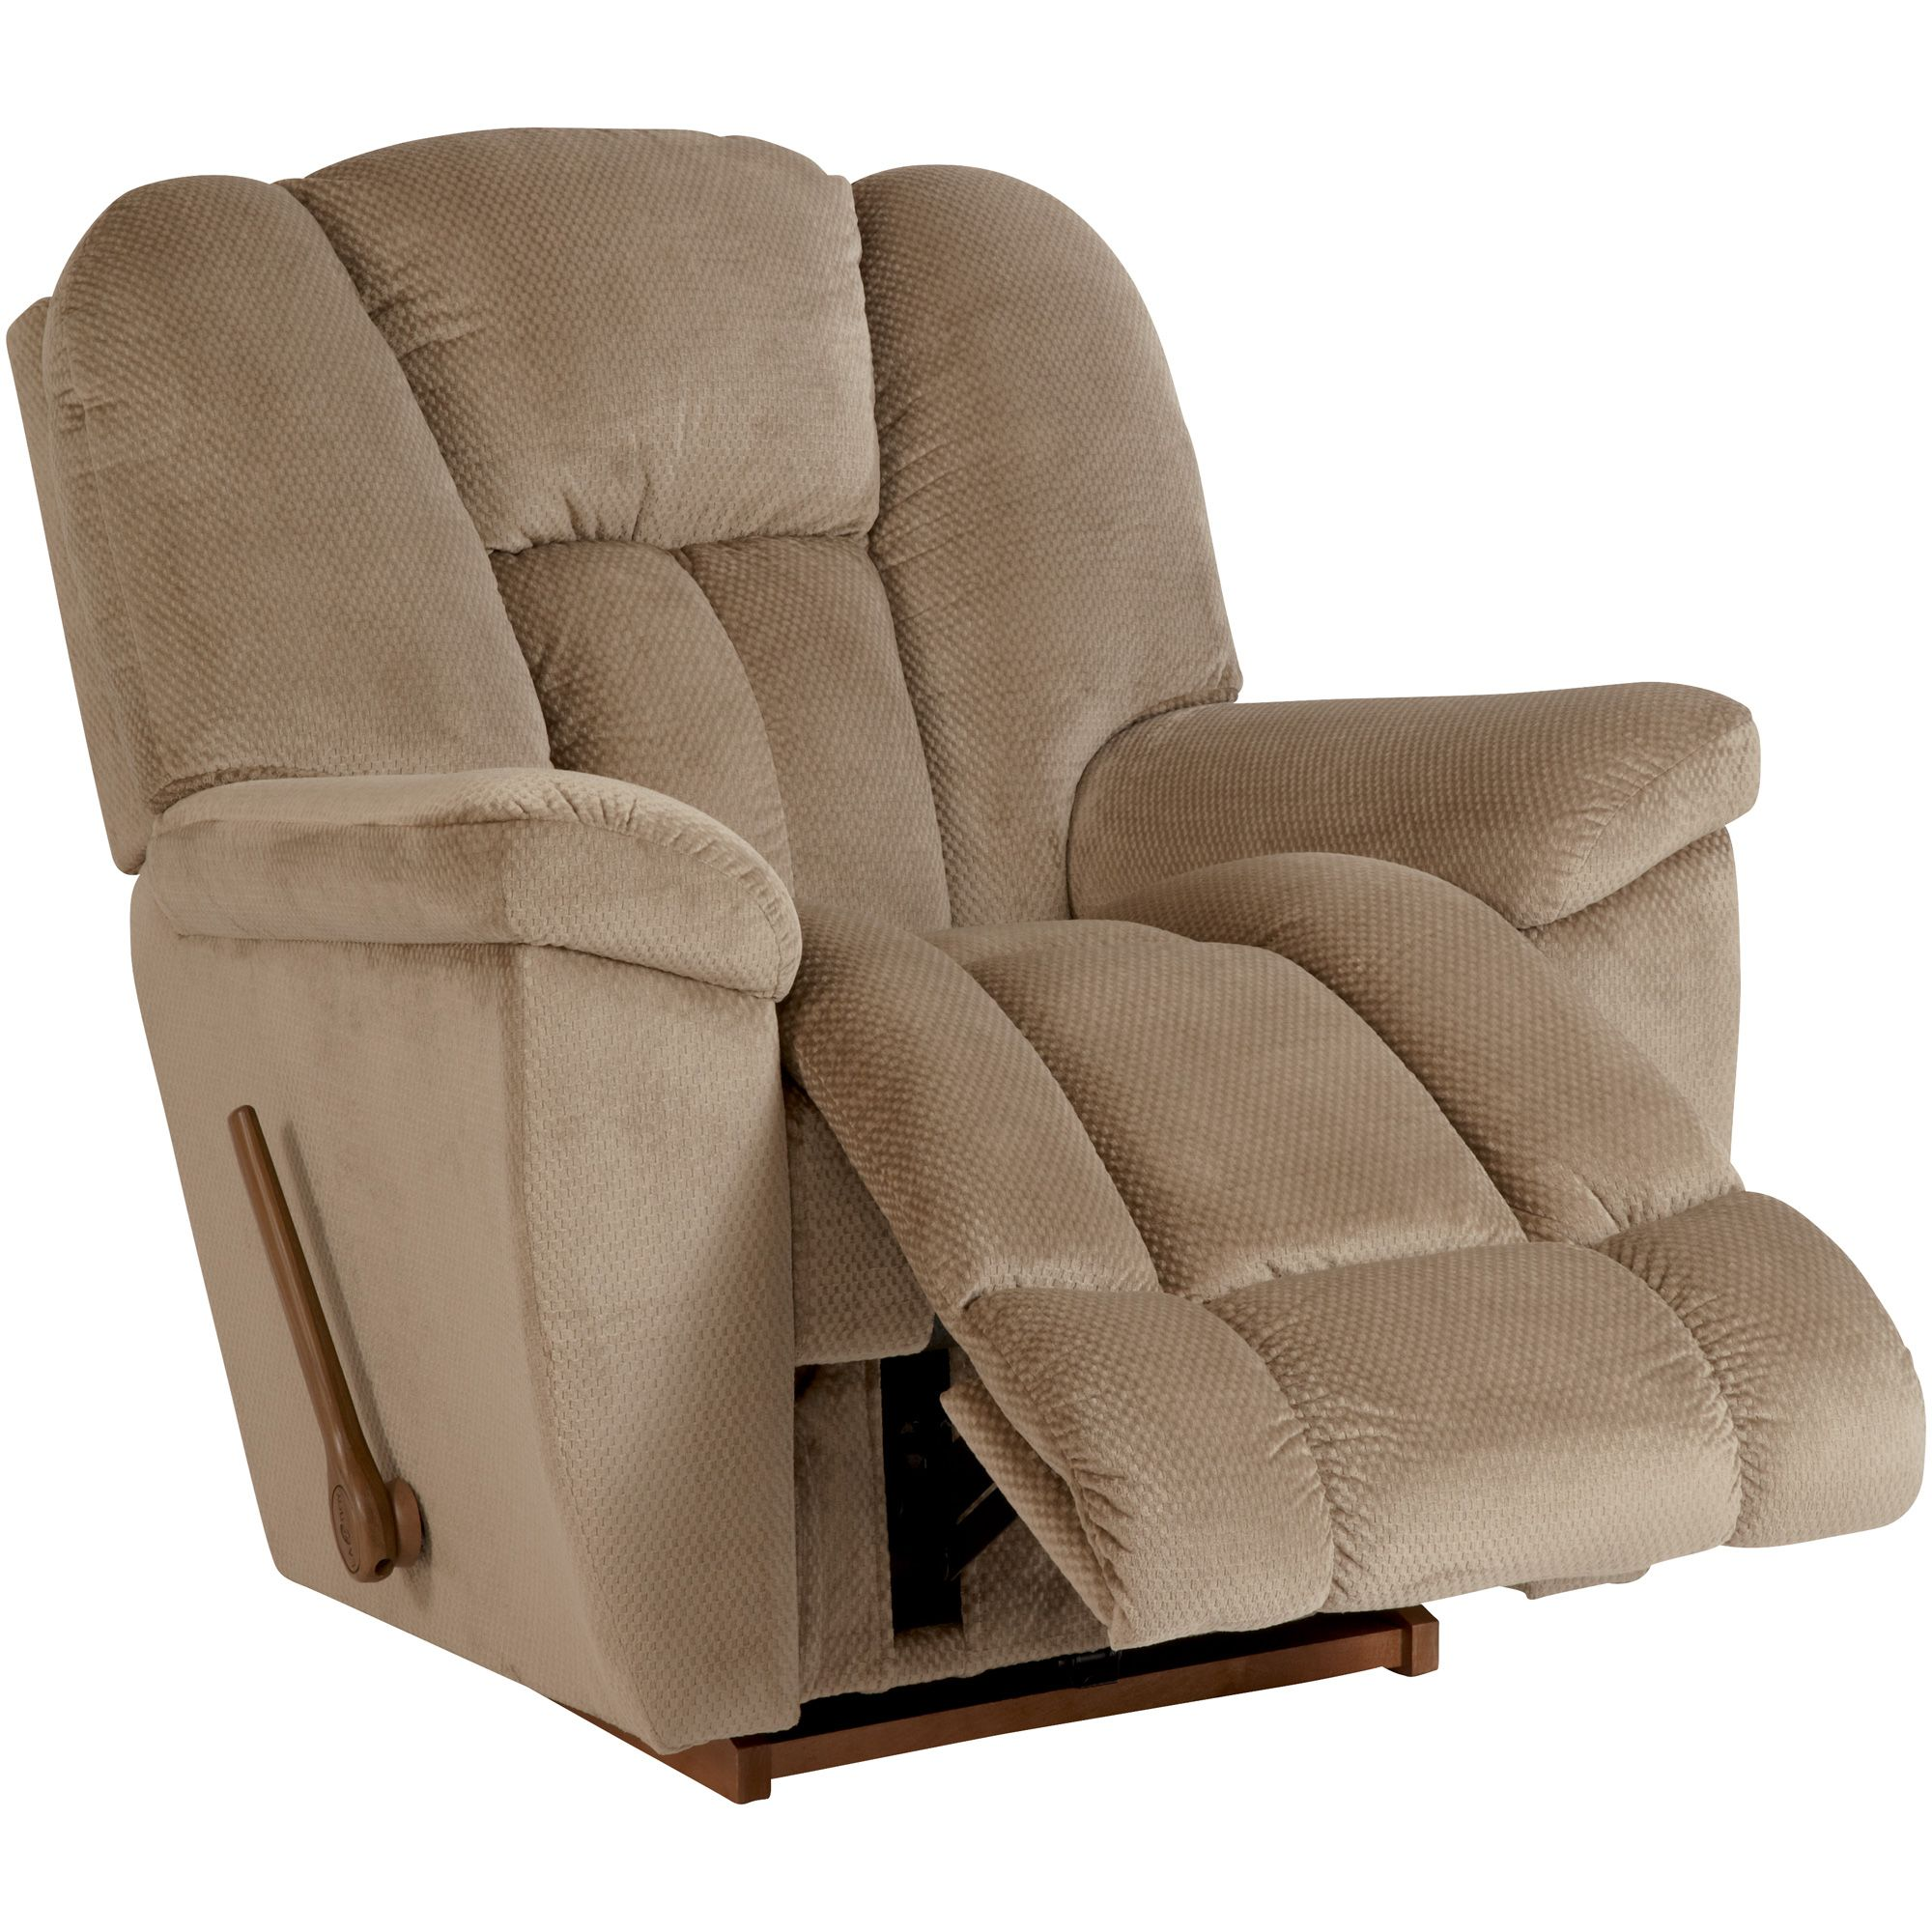 Maverick Cafe Rocker Recliner Lazy Boy Chair Lazy Boy Recliner